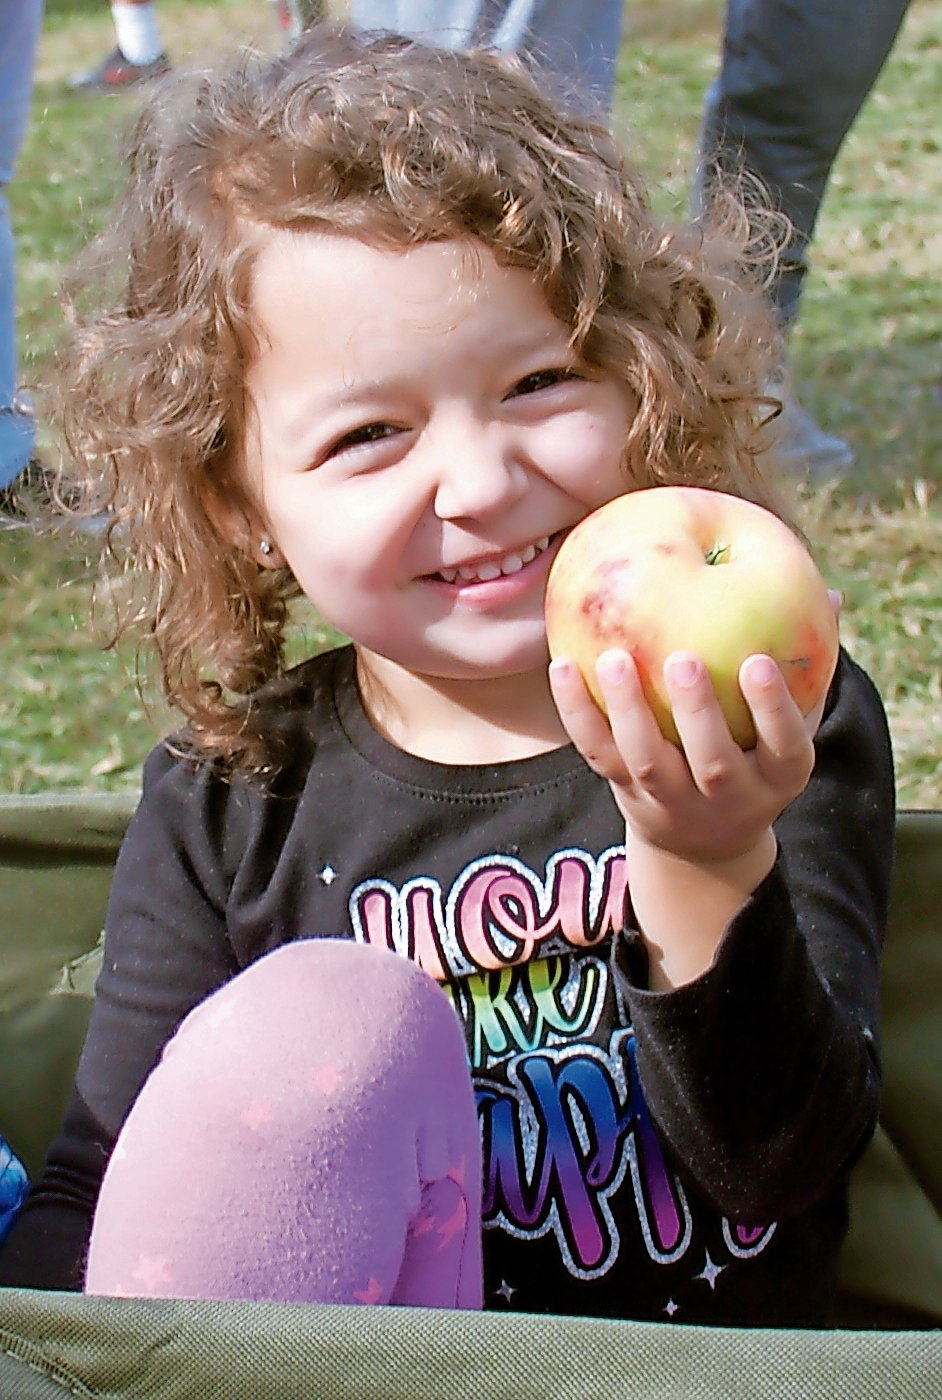 Phoebe Bougiamas, 3, picked out an apple to bring home to eat later.